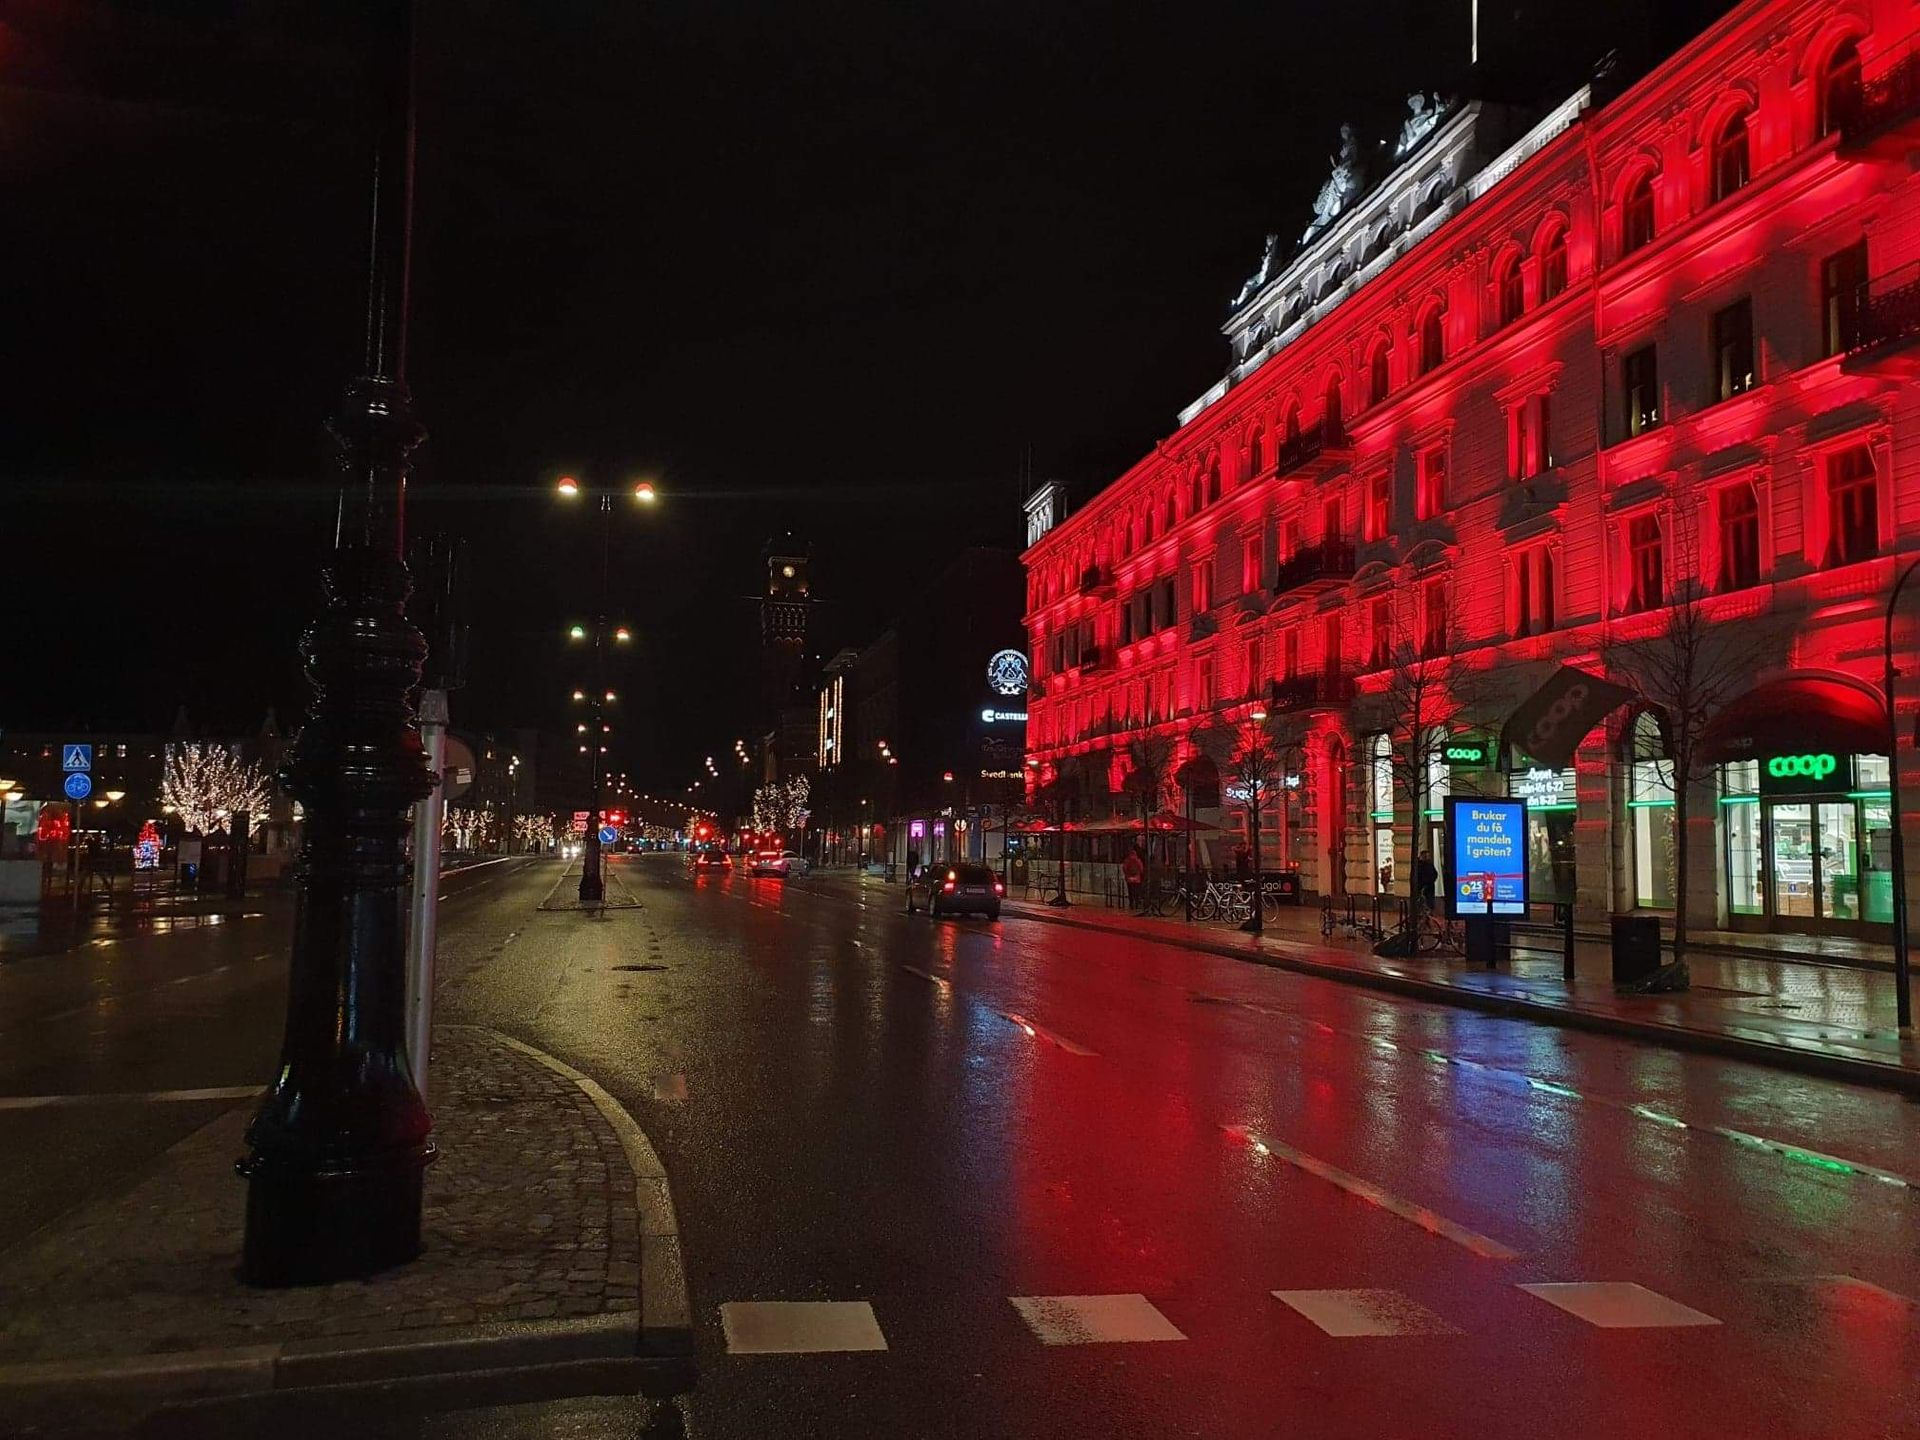 Dark evening, a wet glistening street in front of a building with bright red lights